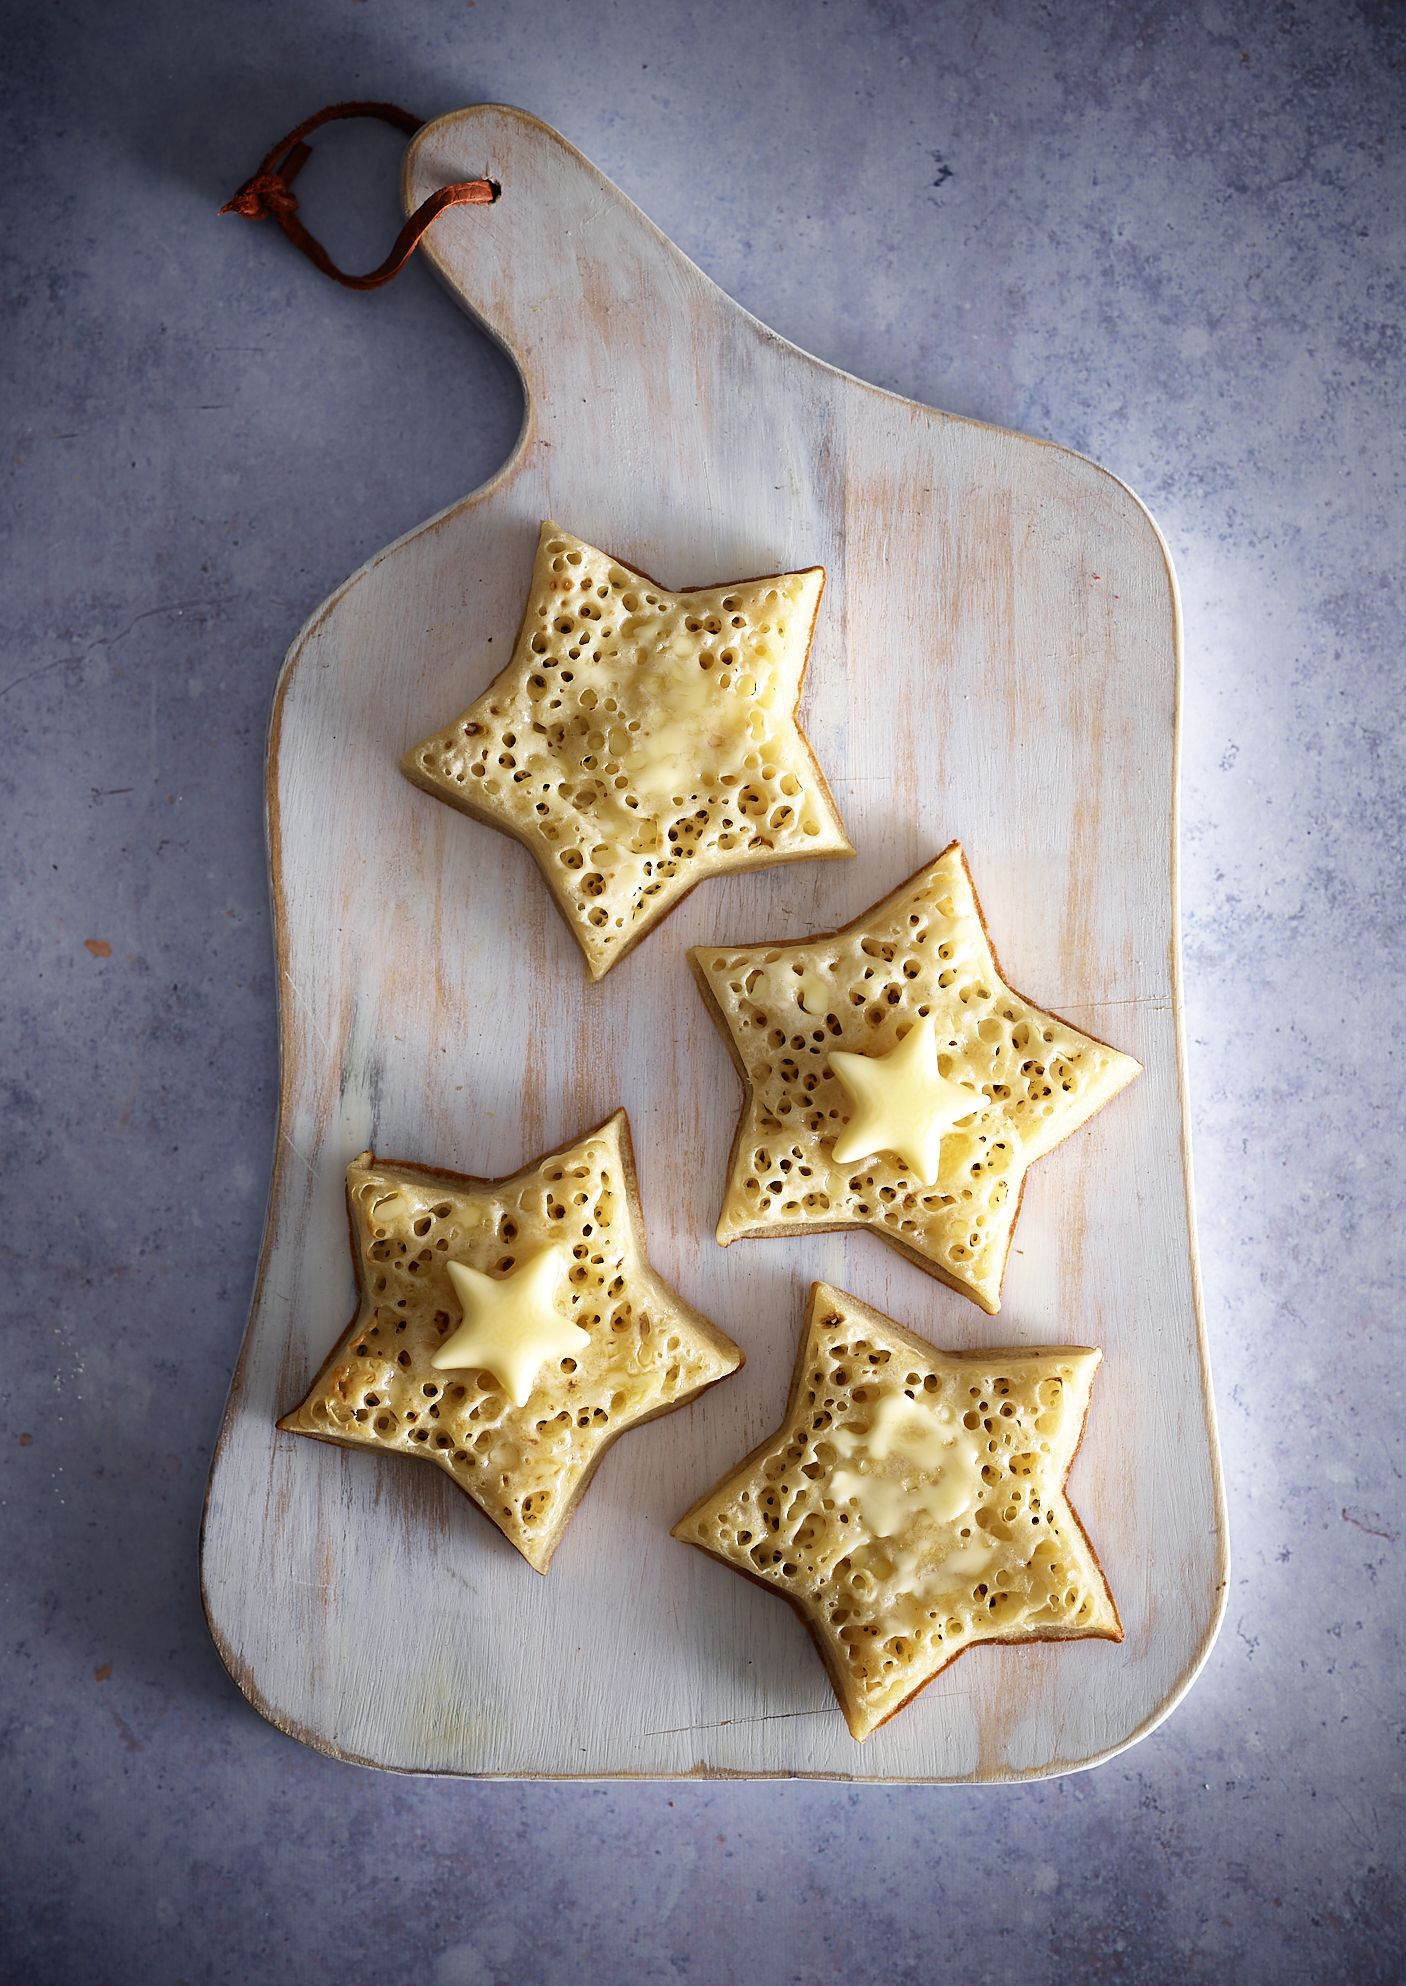 Star Shaped Crumpets Is All We Want To Eat For Breakfast From Now On